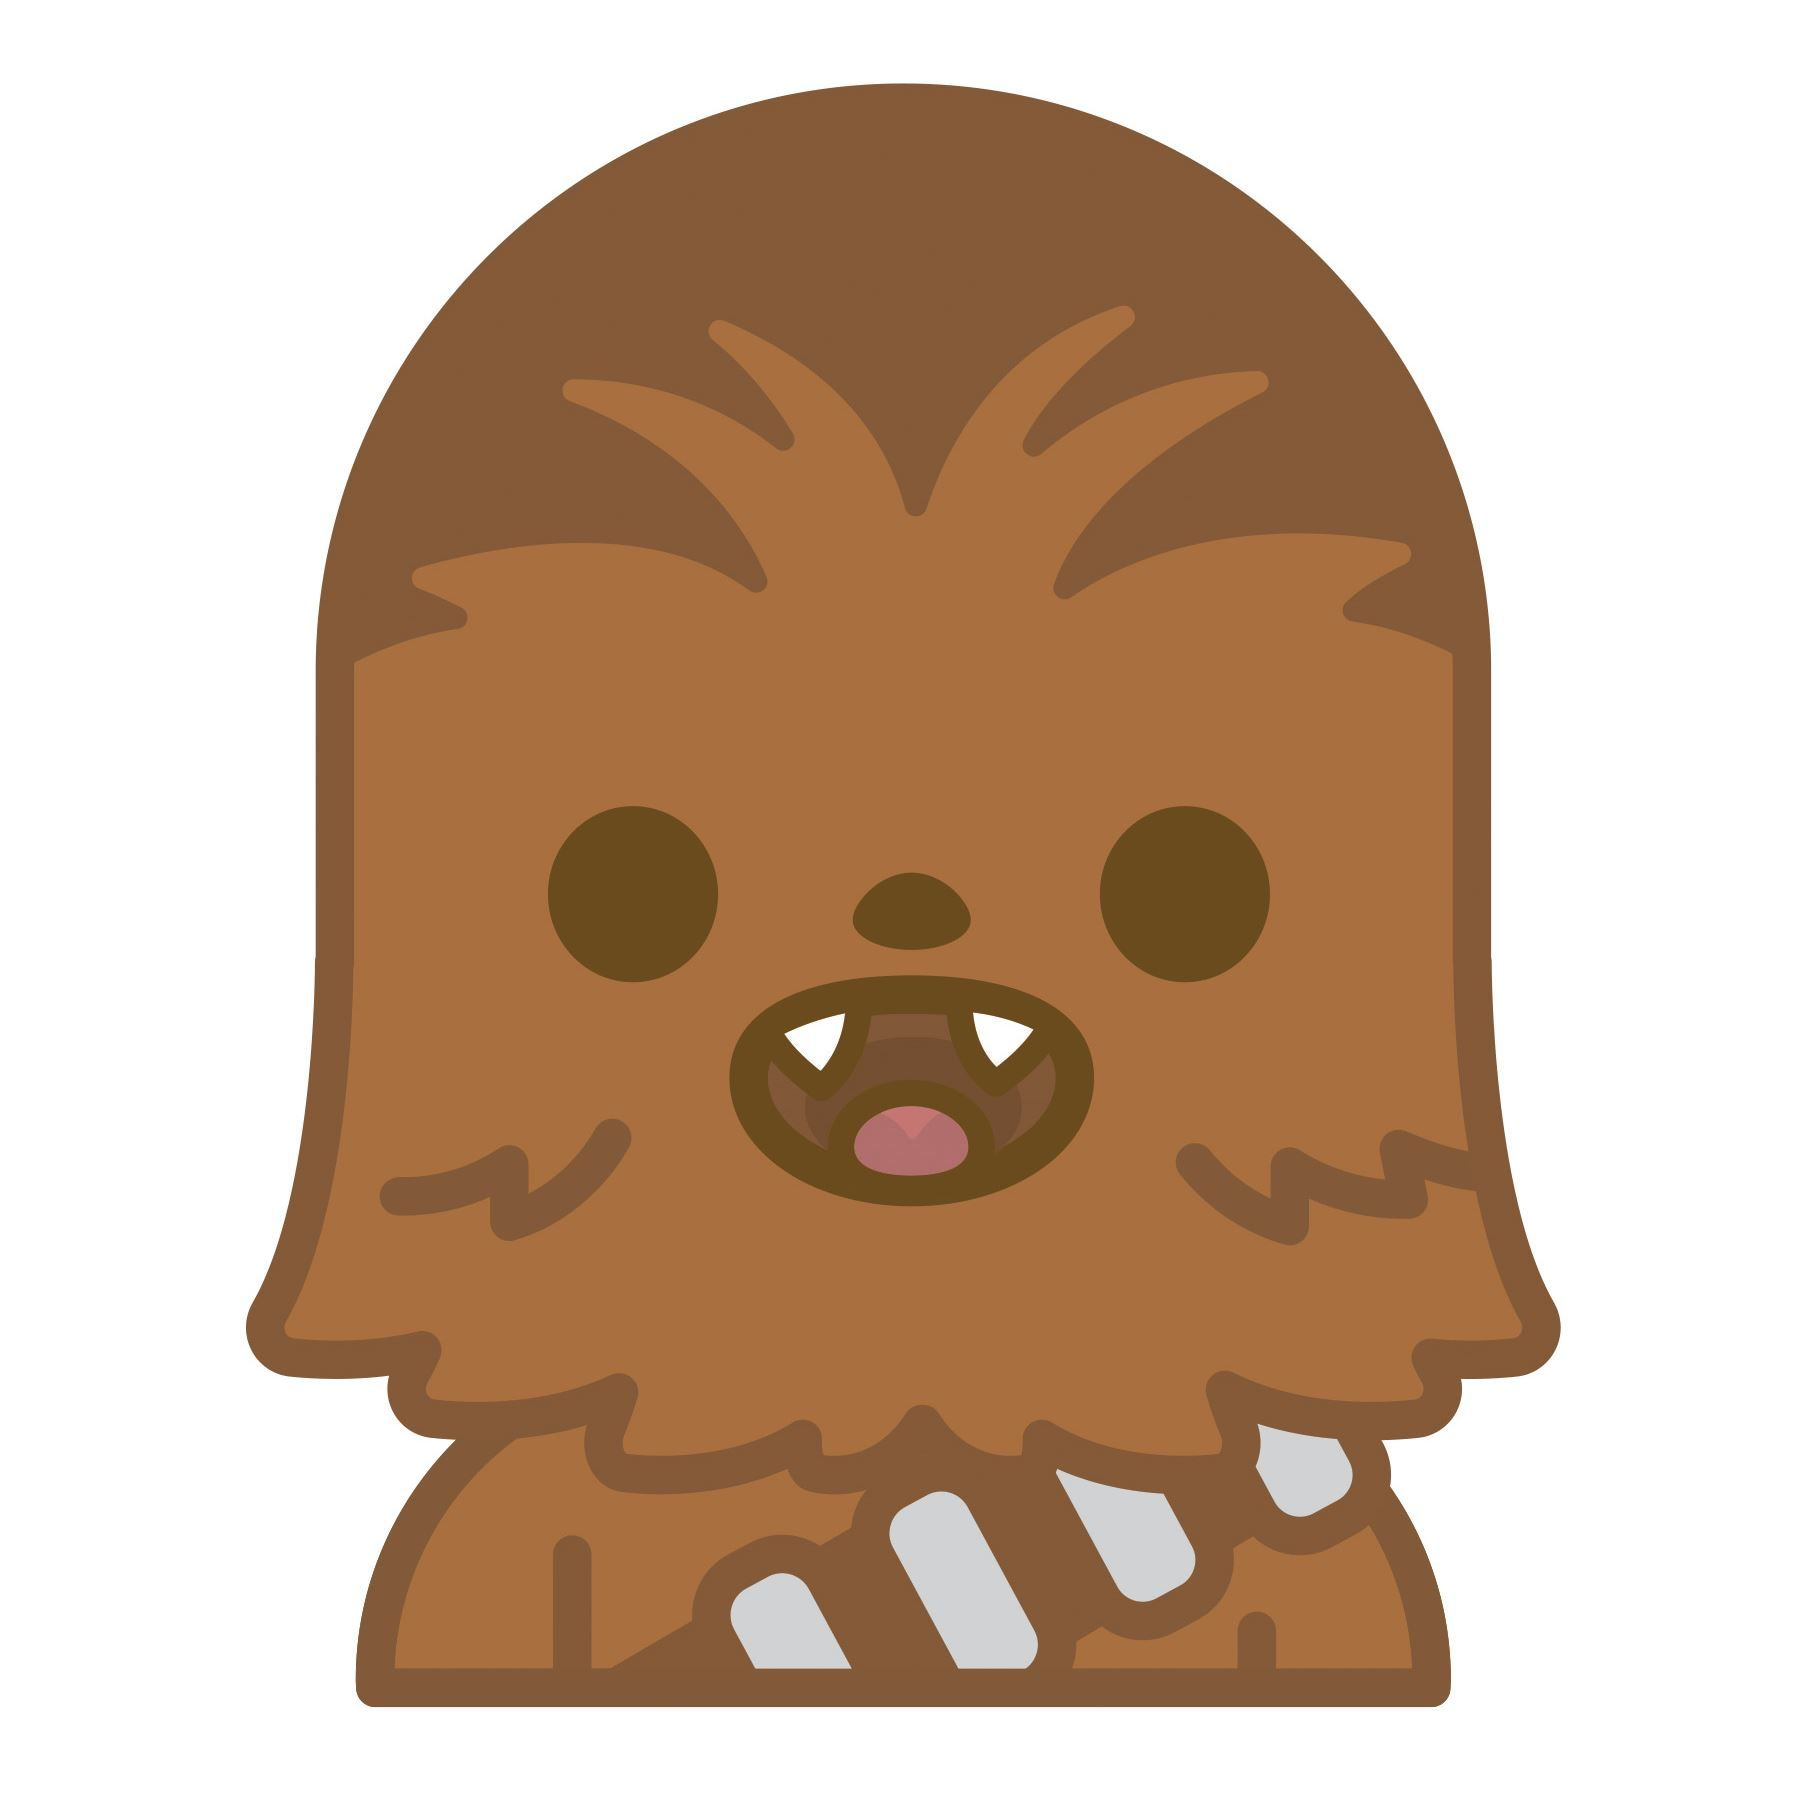 chewbacca clipart animated